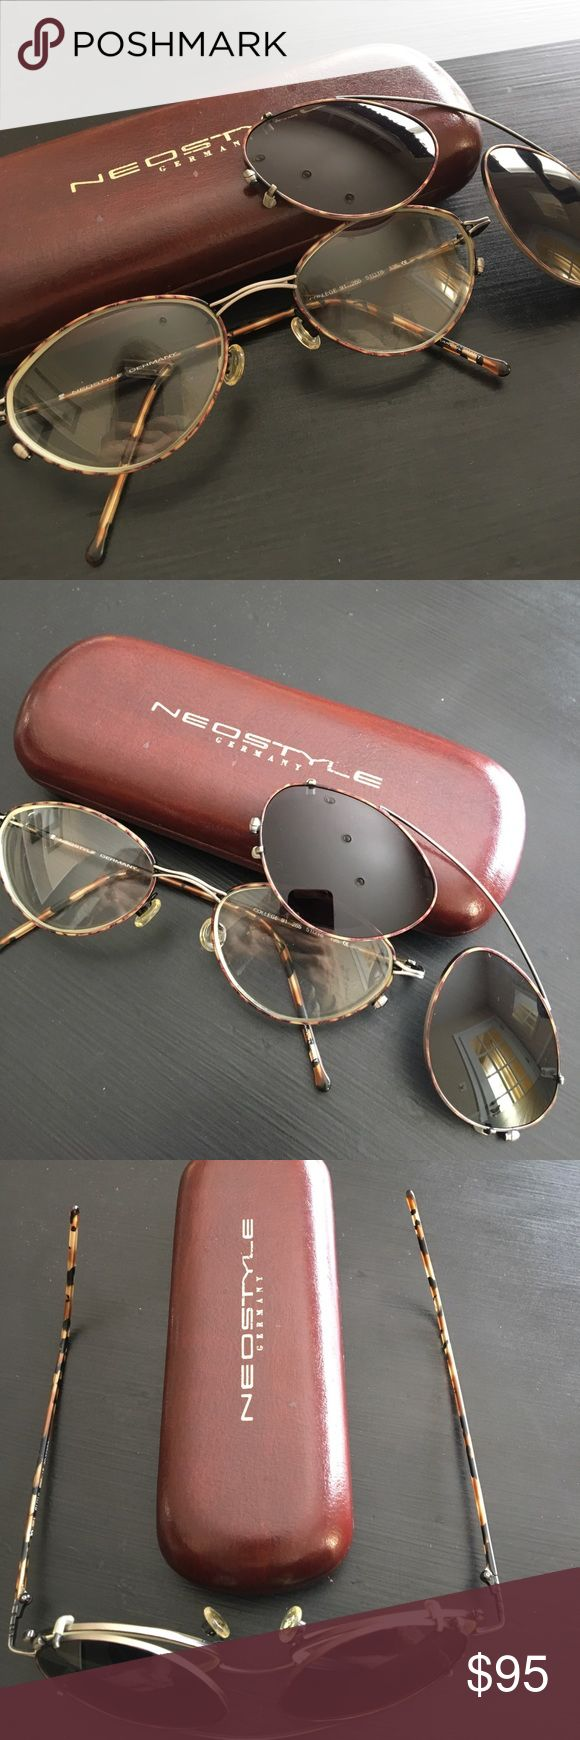 NEOSTYLE Germany wire-rim glasses & sunglass clip New condition. No scratches or signs of wear. Prescription lenses in the glasses but can easily be replaced with your lens by any ophthalmologist. Bonus original case included. Neostyle Accessories Glasses